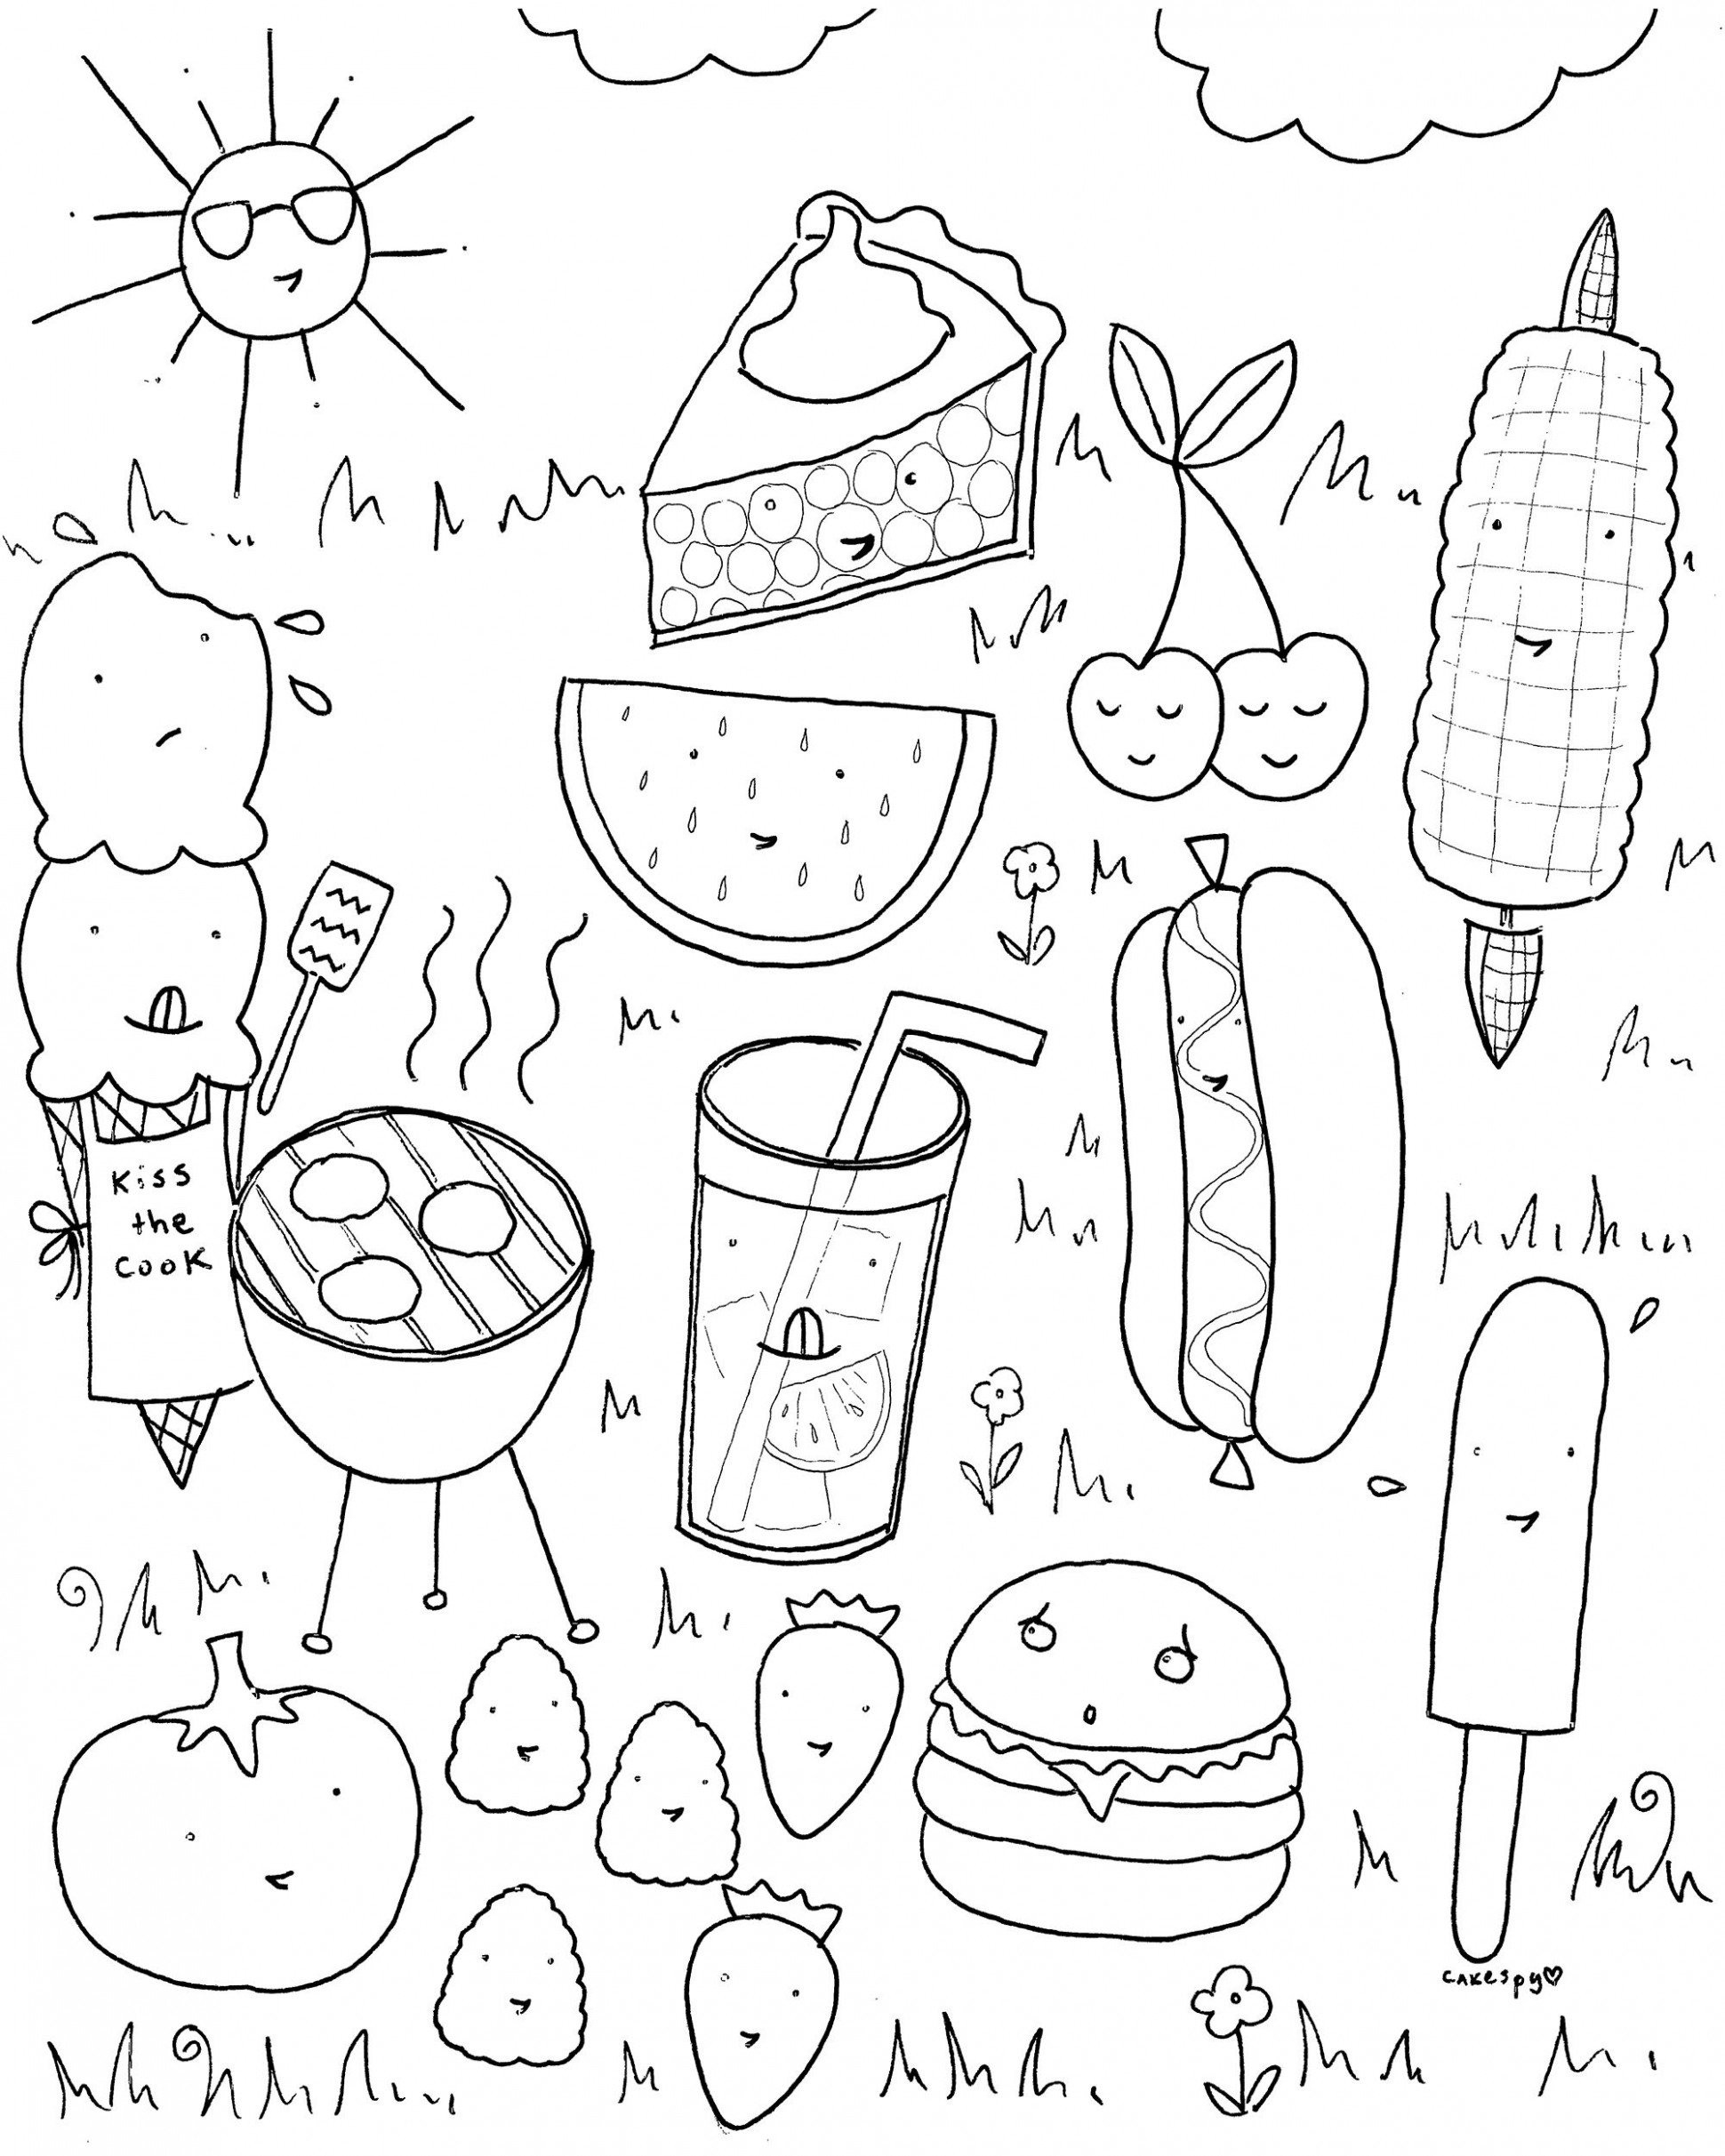 FREE Downloadable Summer Fun Coloring Book Pages   Ideen für Kinder ..